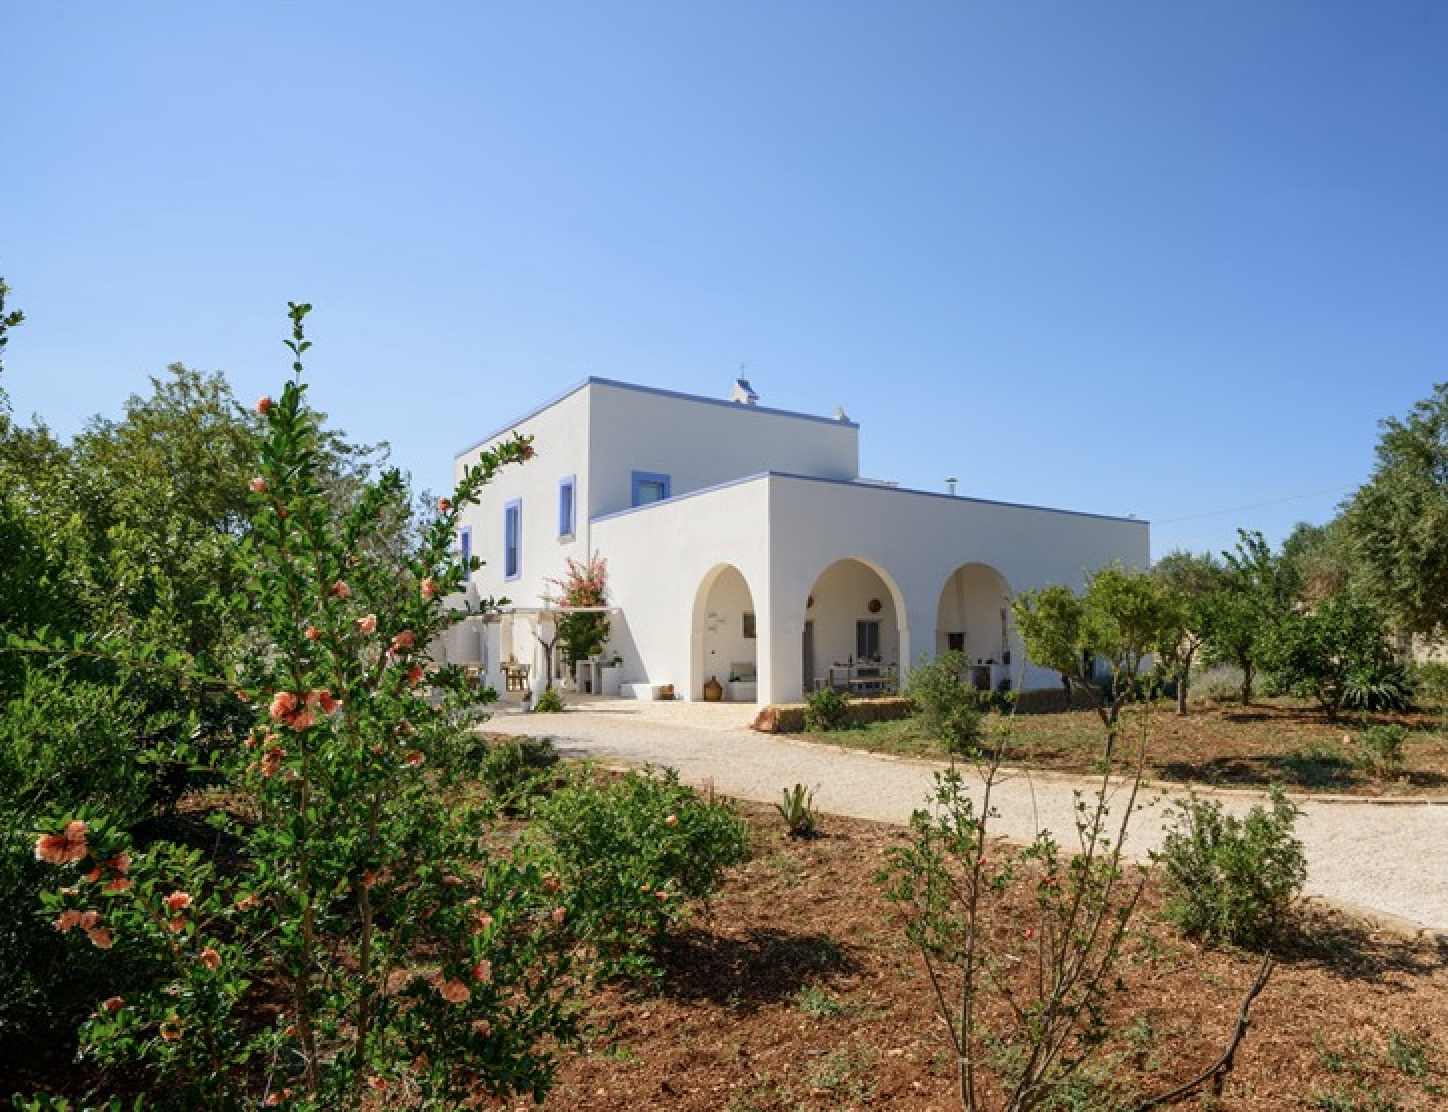 CHARMING MASSERIA - POLIGNANO A MARE - 4 BEDROOMS - 3 BATHWEEKLY PRICE FROM €2,439